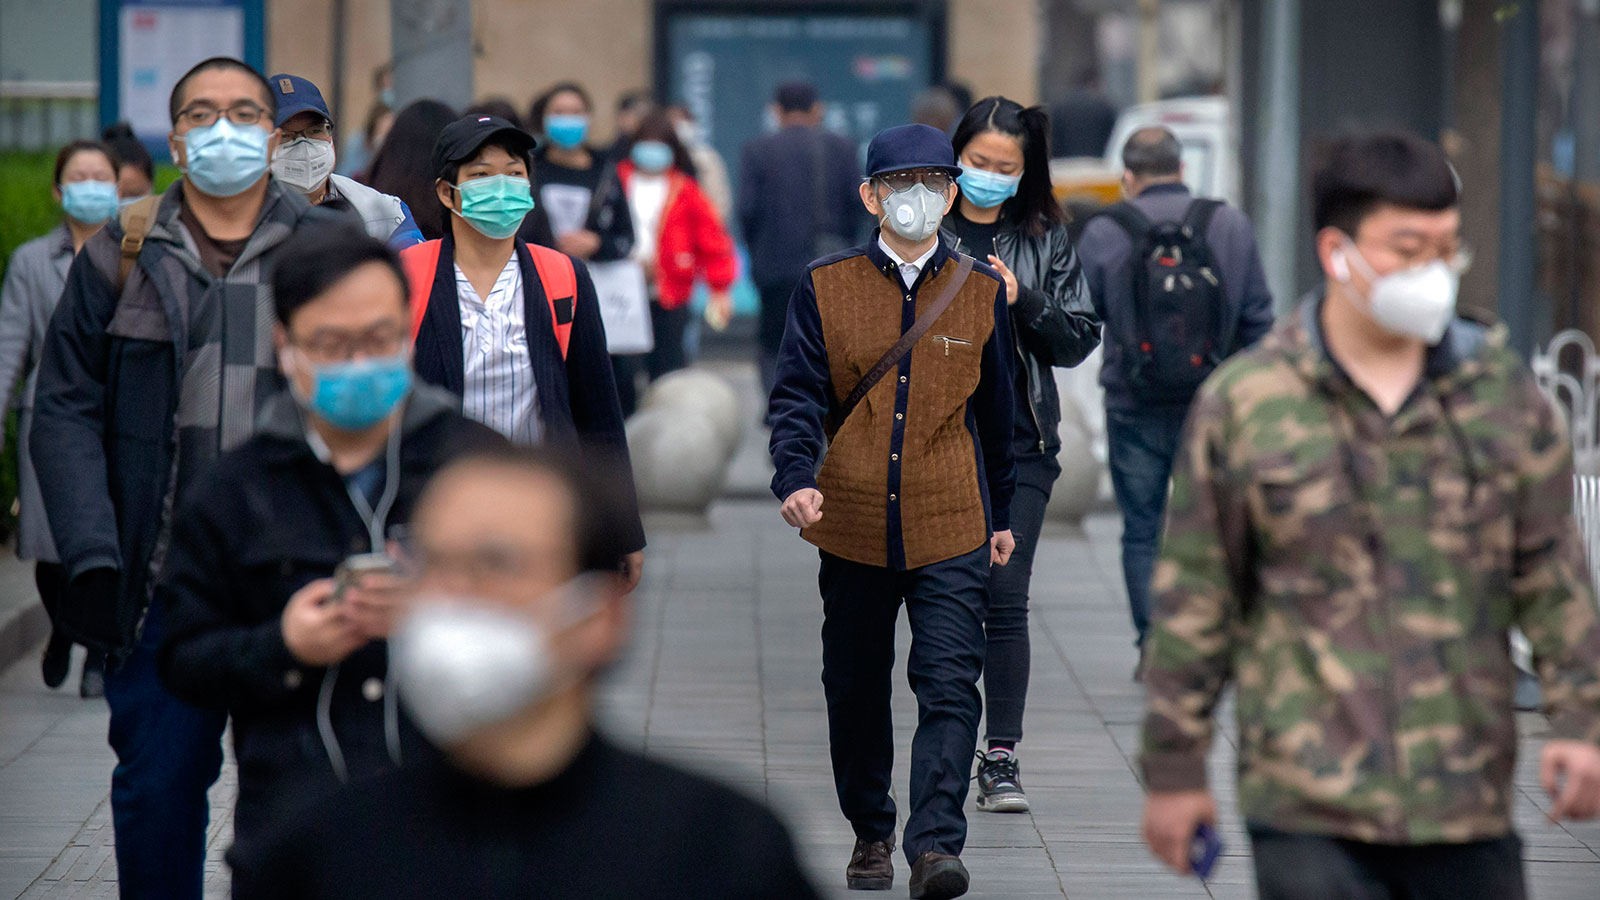 Commuters wear face masks to protect against the spread of new coronavirus as they walk along a street in Beijing on April 9.